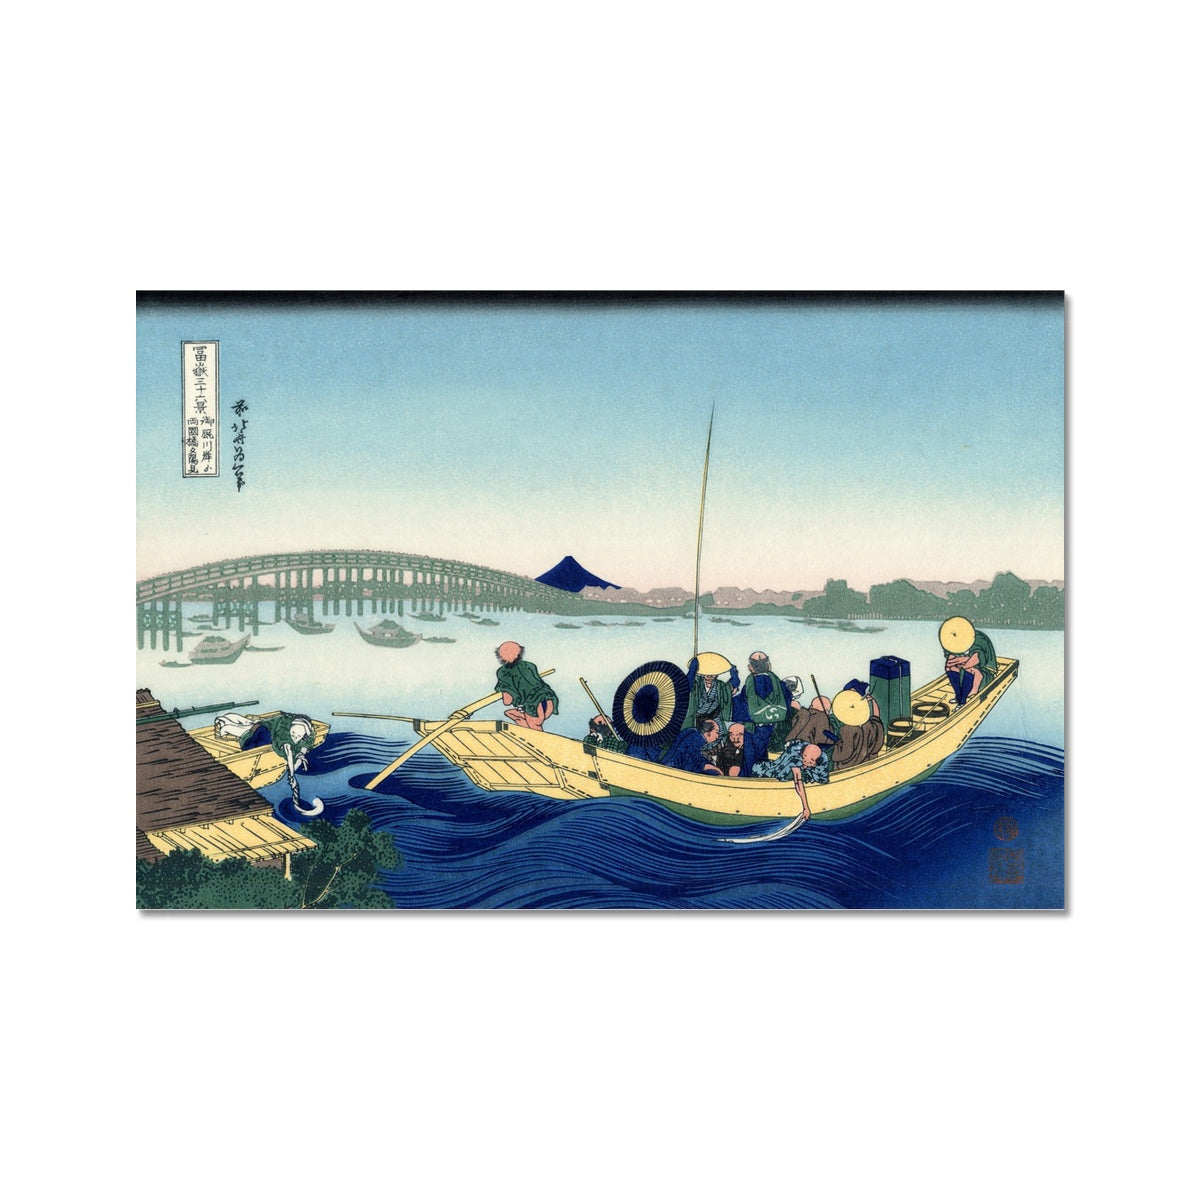 Sunset Across The Ryōgoku Bridge From The Bank Of The Sumida River At Onmayagashi - Fine Art Print